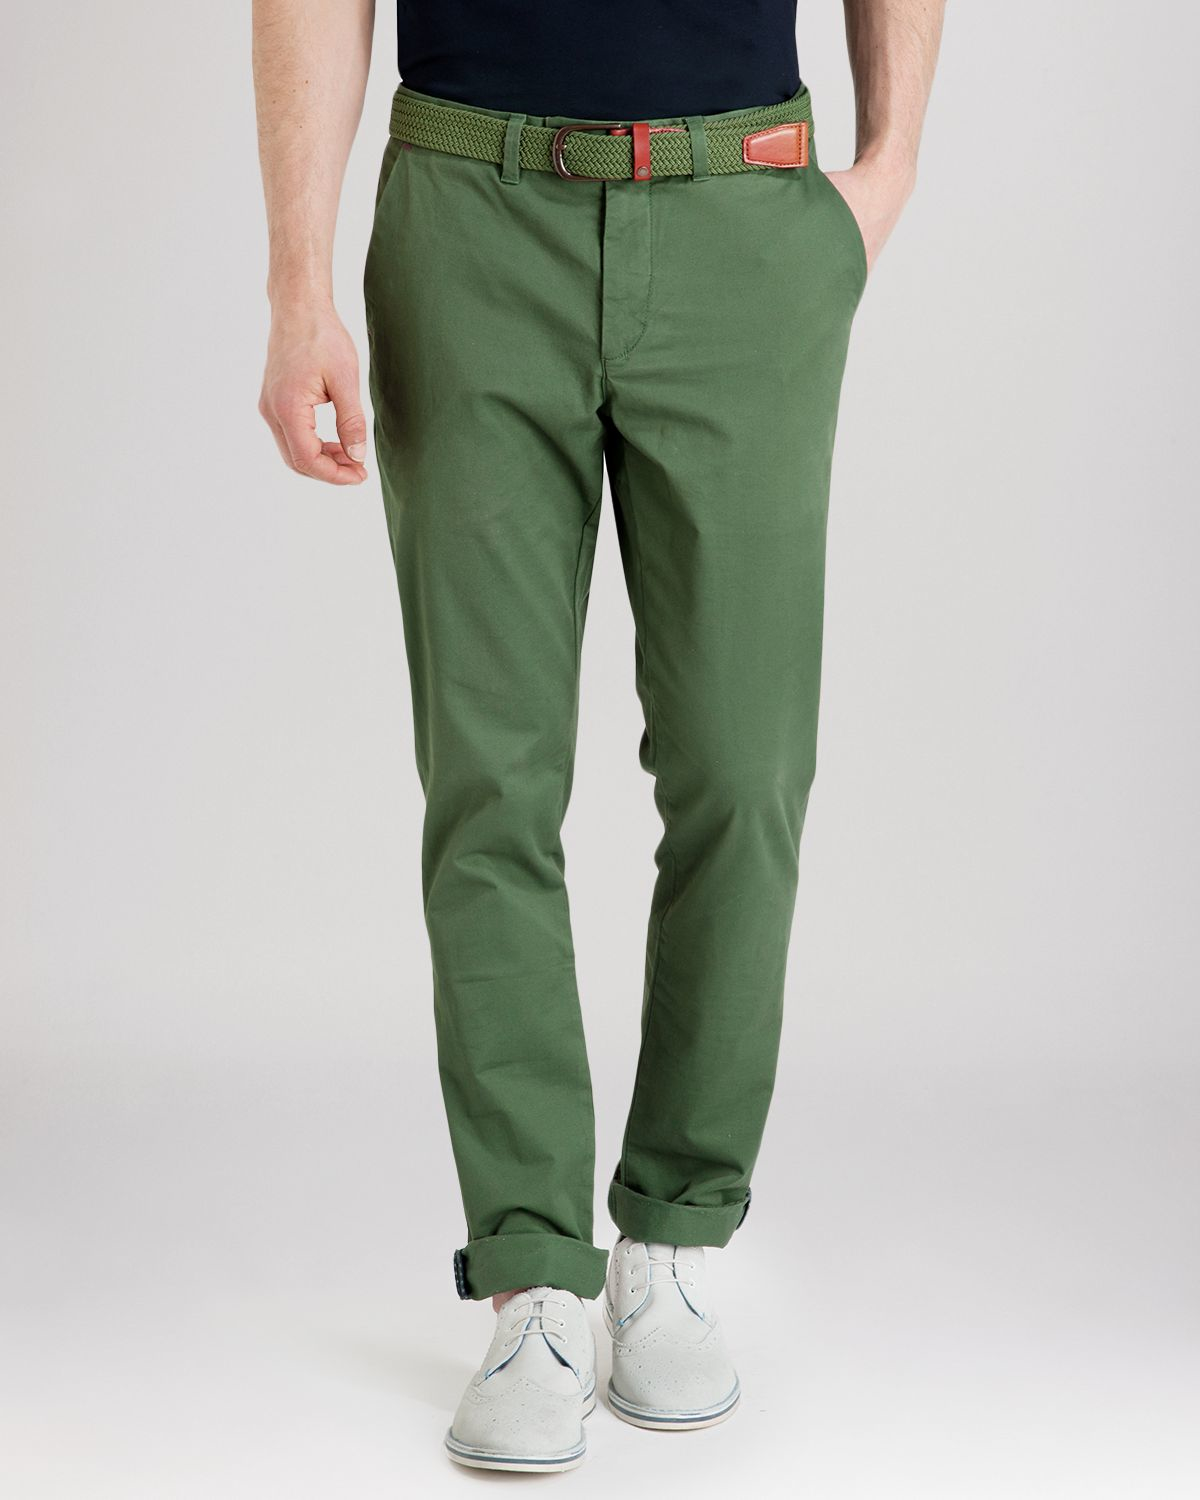 Green. Silver. See more colors. Price $ to $ Go. Please enter a minimum and maximum price. 0 - $5. $5 - $ Women's Danskin Pants. Clothing. Women. Danskin Now Women's Dri-More Bootcut Pants available in Regular and Petite, 2-Pack Value Bundle. Rollback. Product Image.